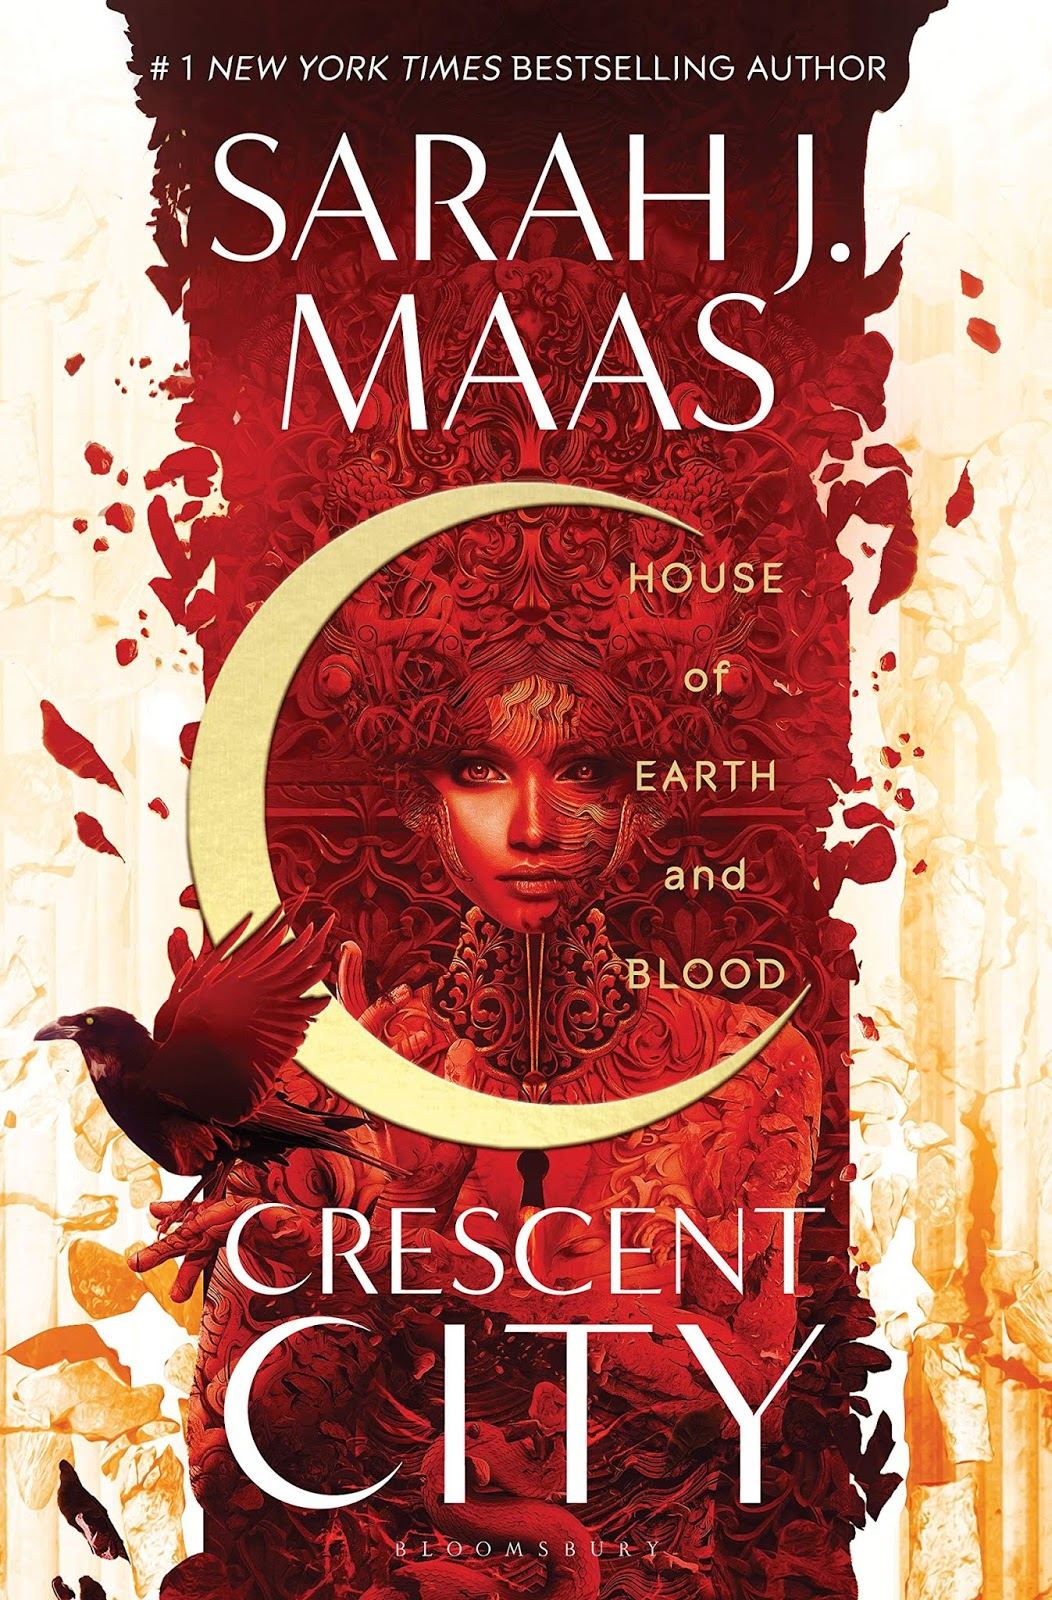 Quotes from House of Earth and Blood by Sarah J. Maas